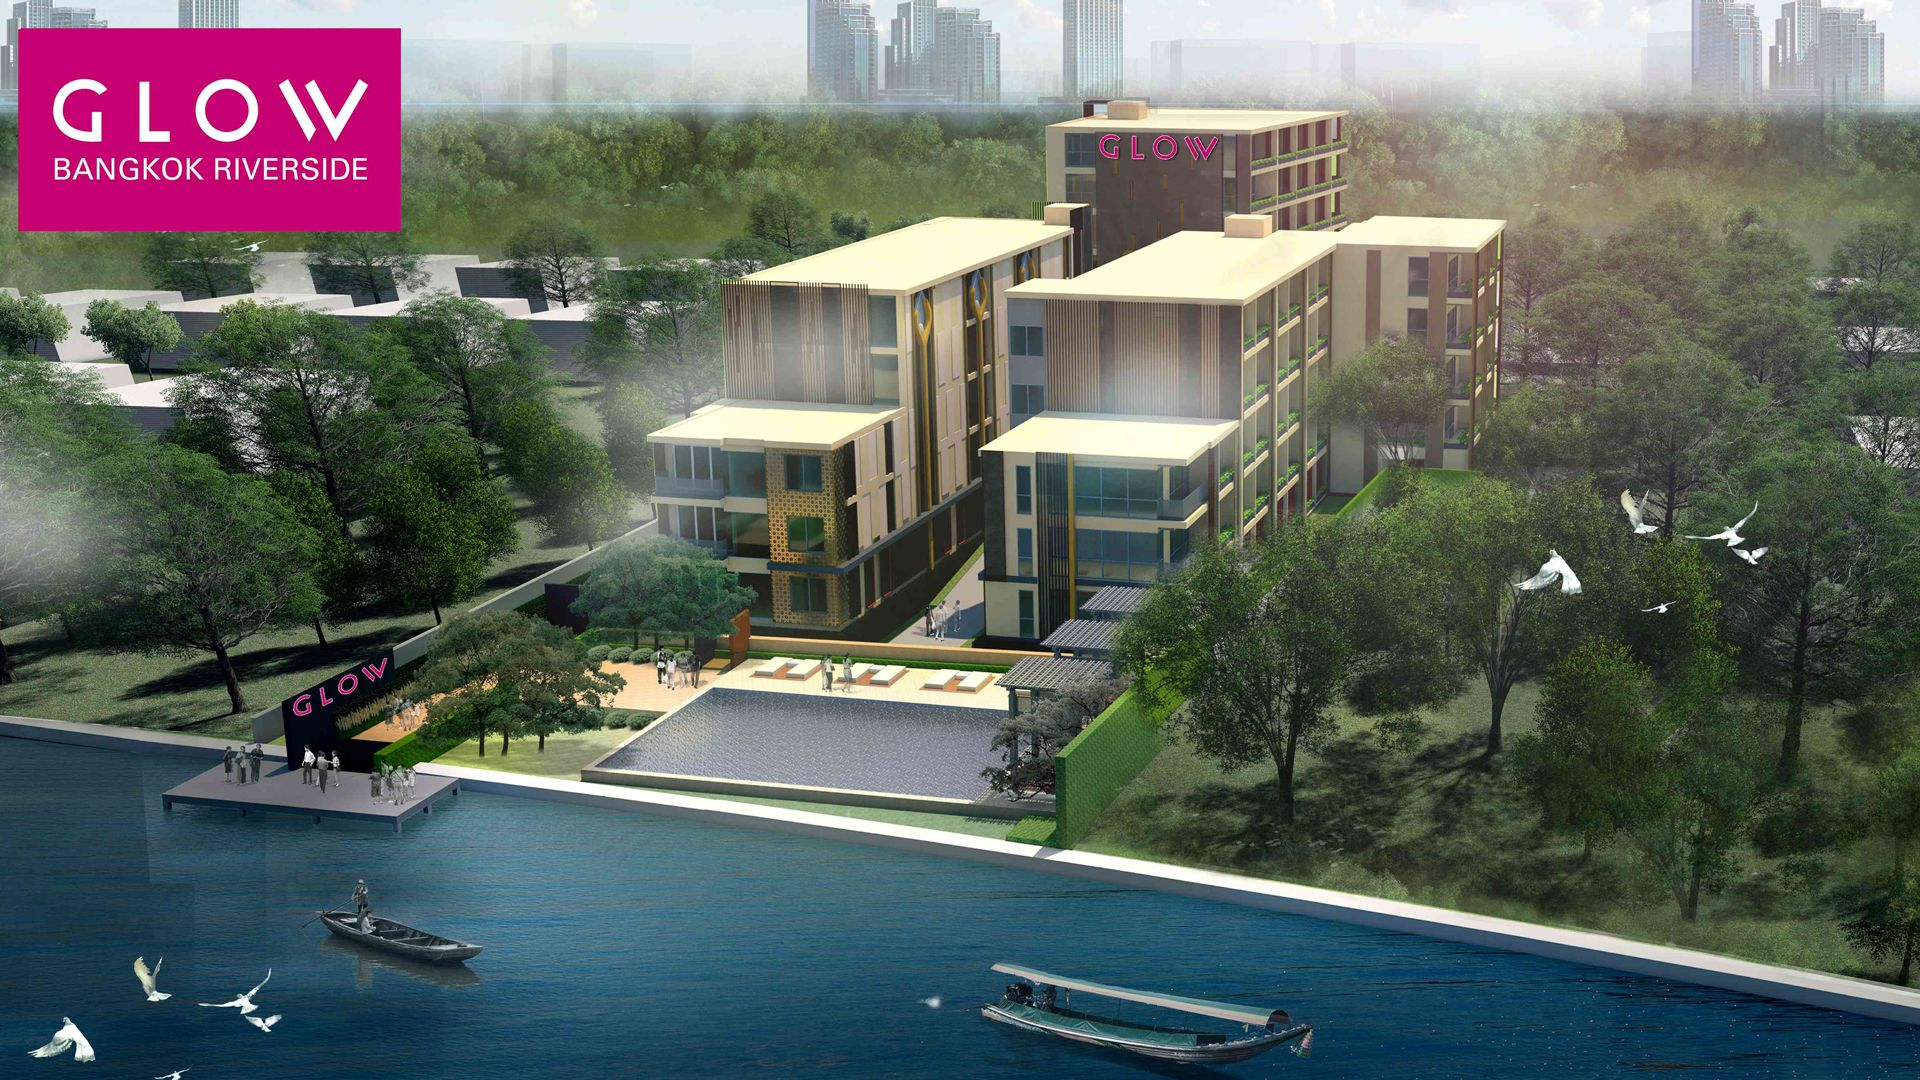 InVision Hospitality to Manage New Riverside Property as 'GLOW Bangkok Riverside'